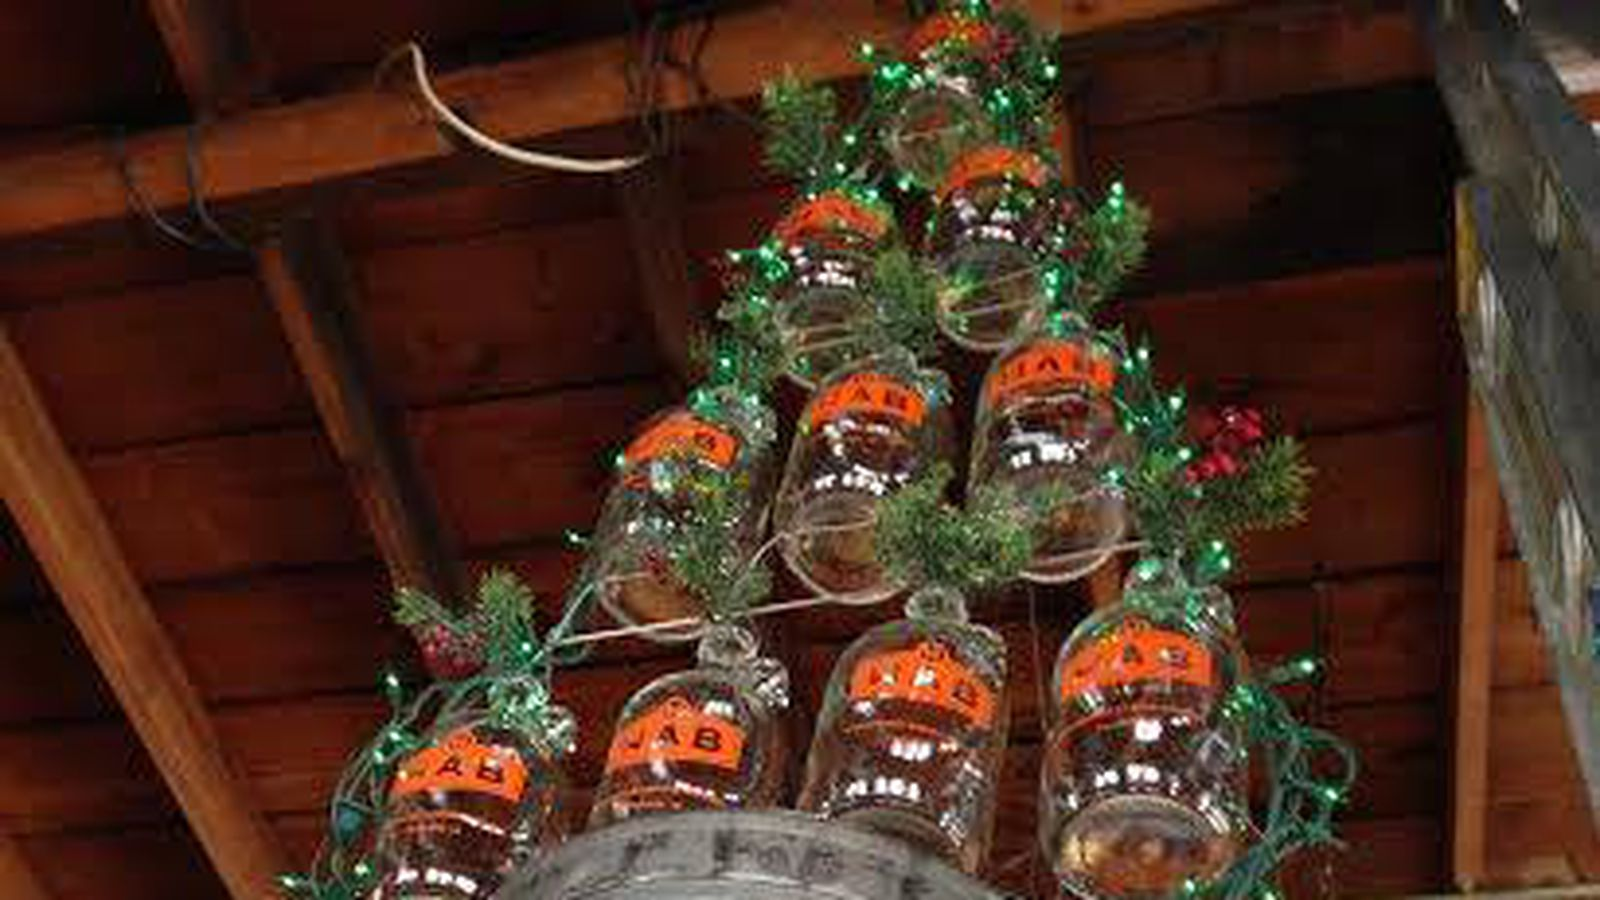 Beer-Themed Christmas Tree Replaces Flood-Damaged